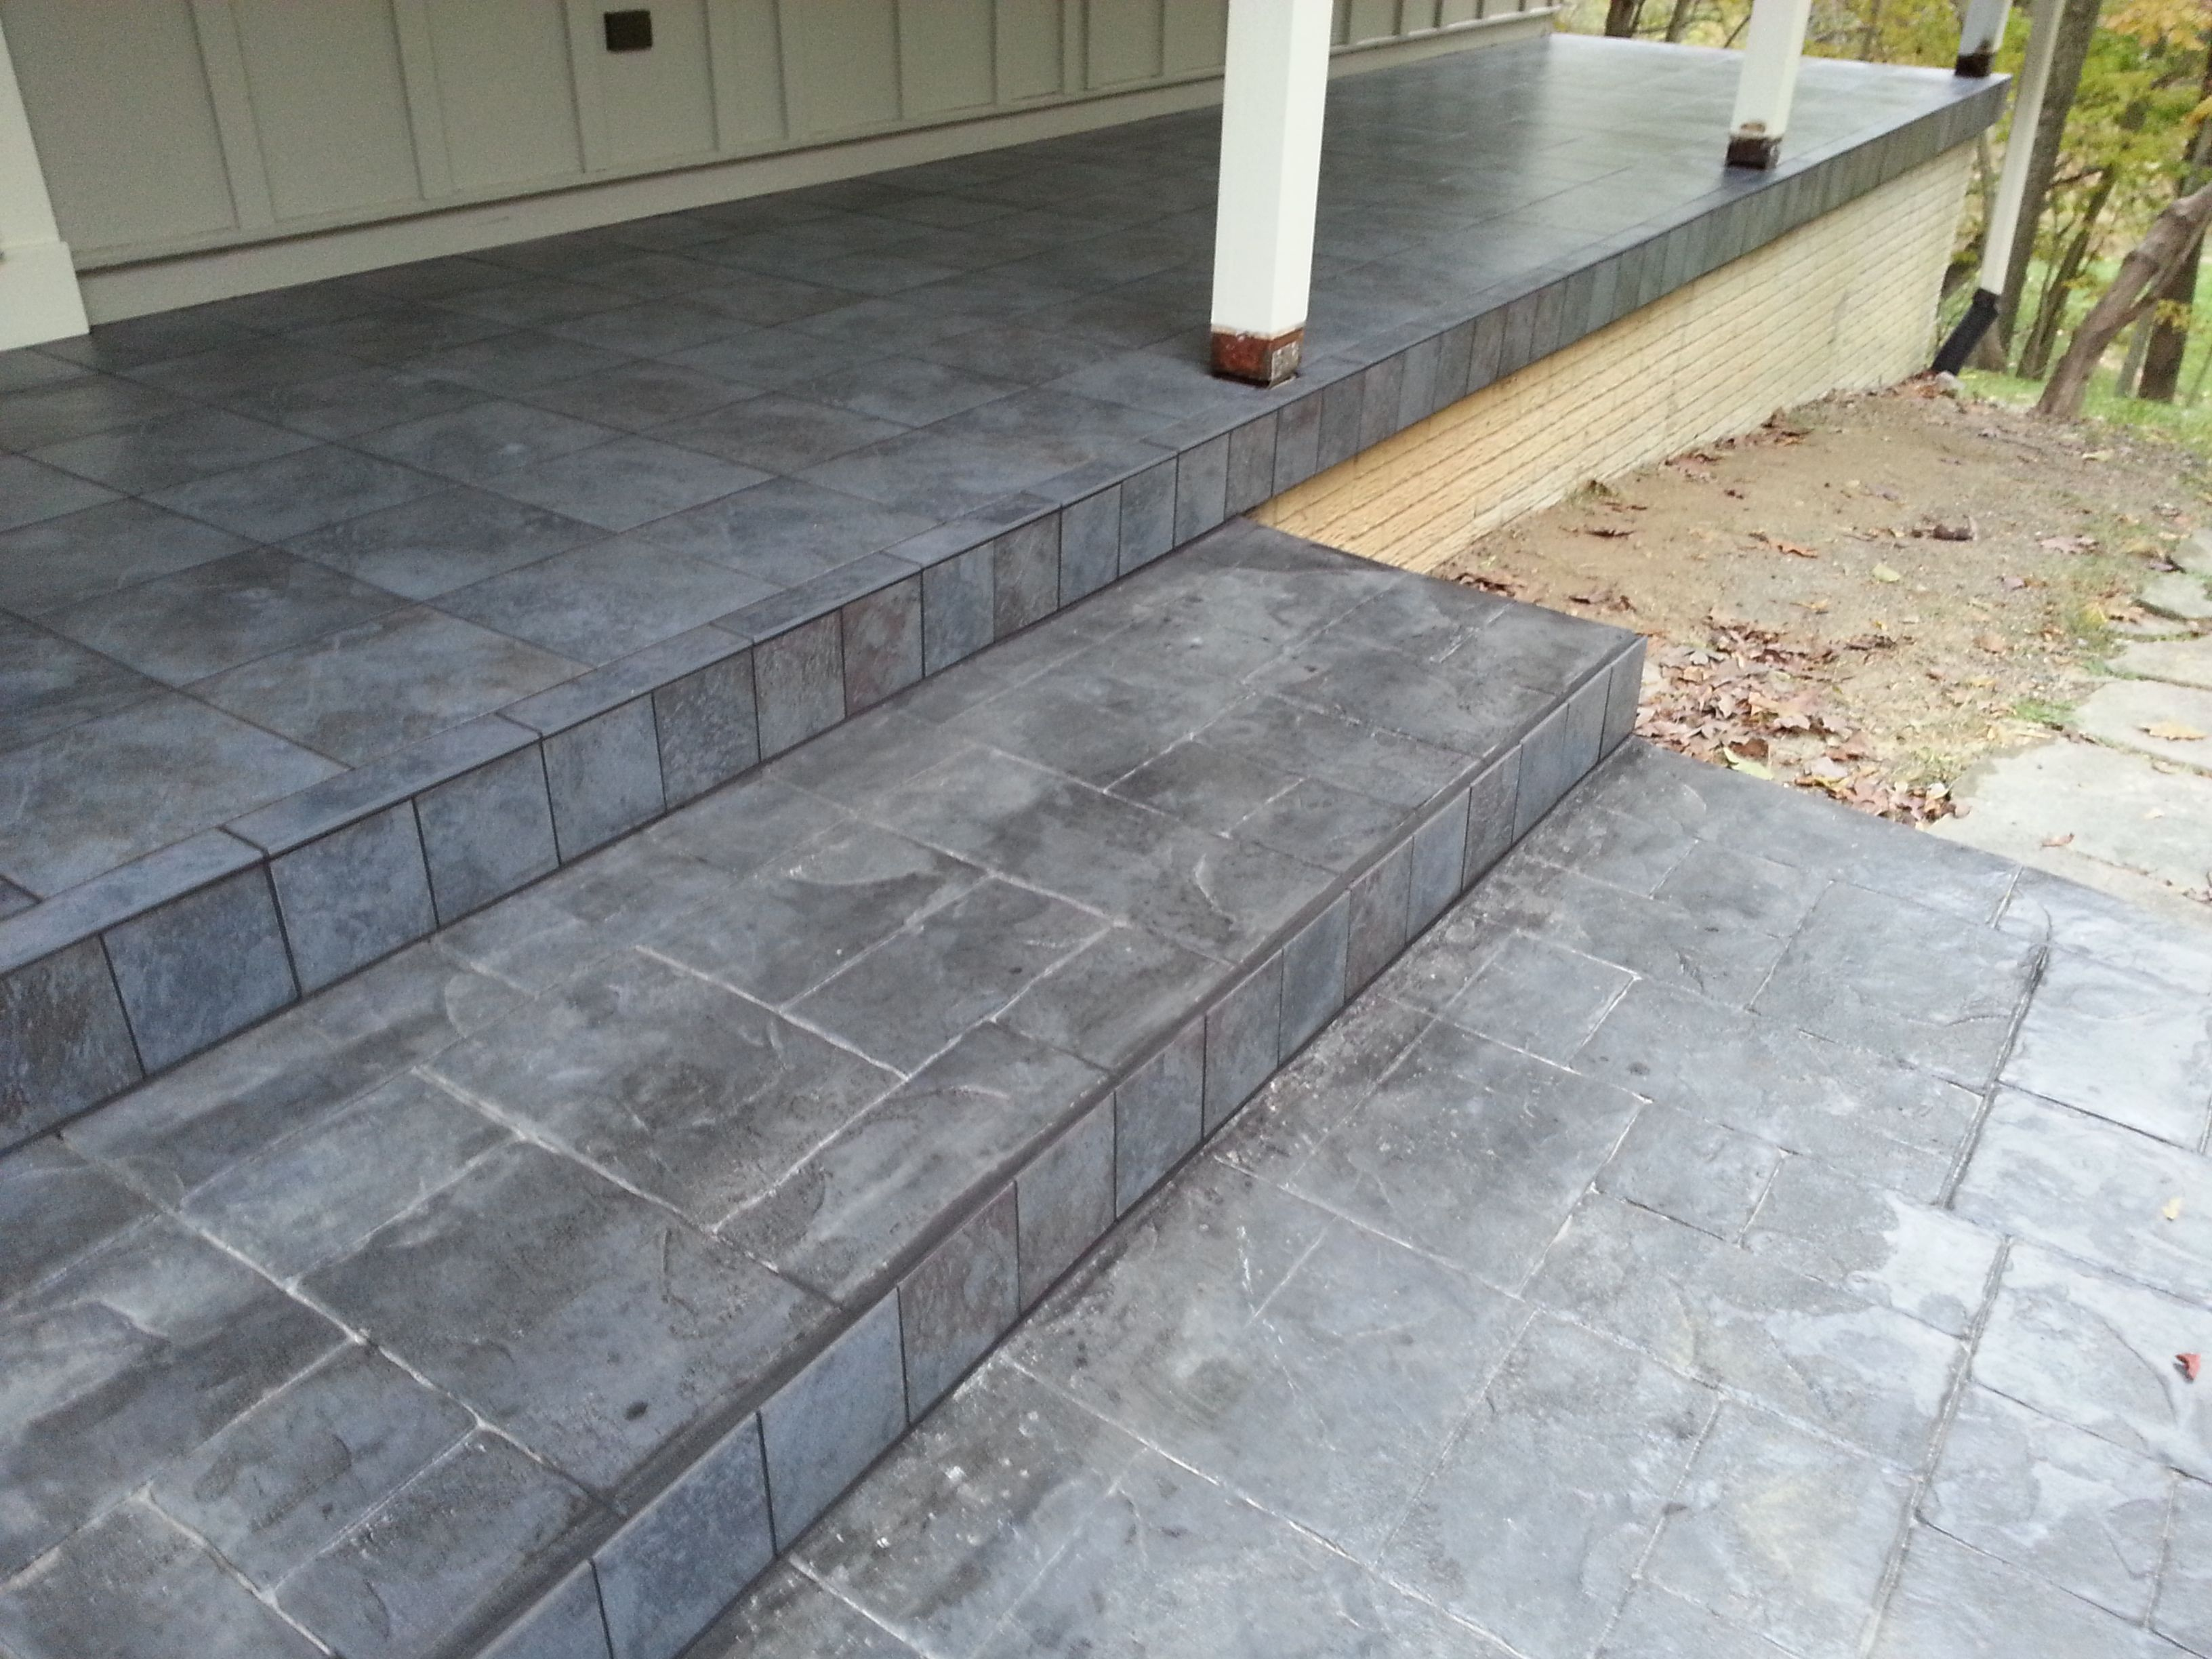 Porcelain Tile Installed On An Out Door Patio House Exterior